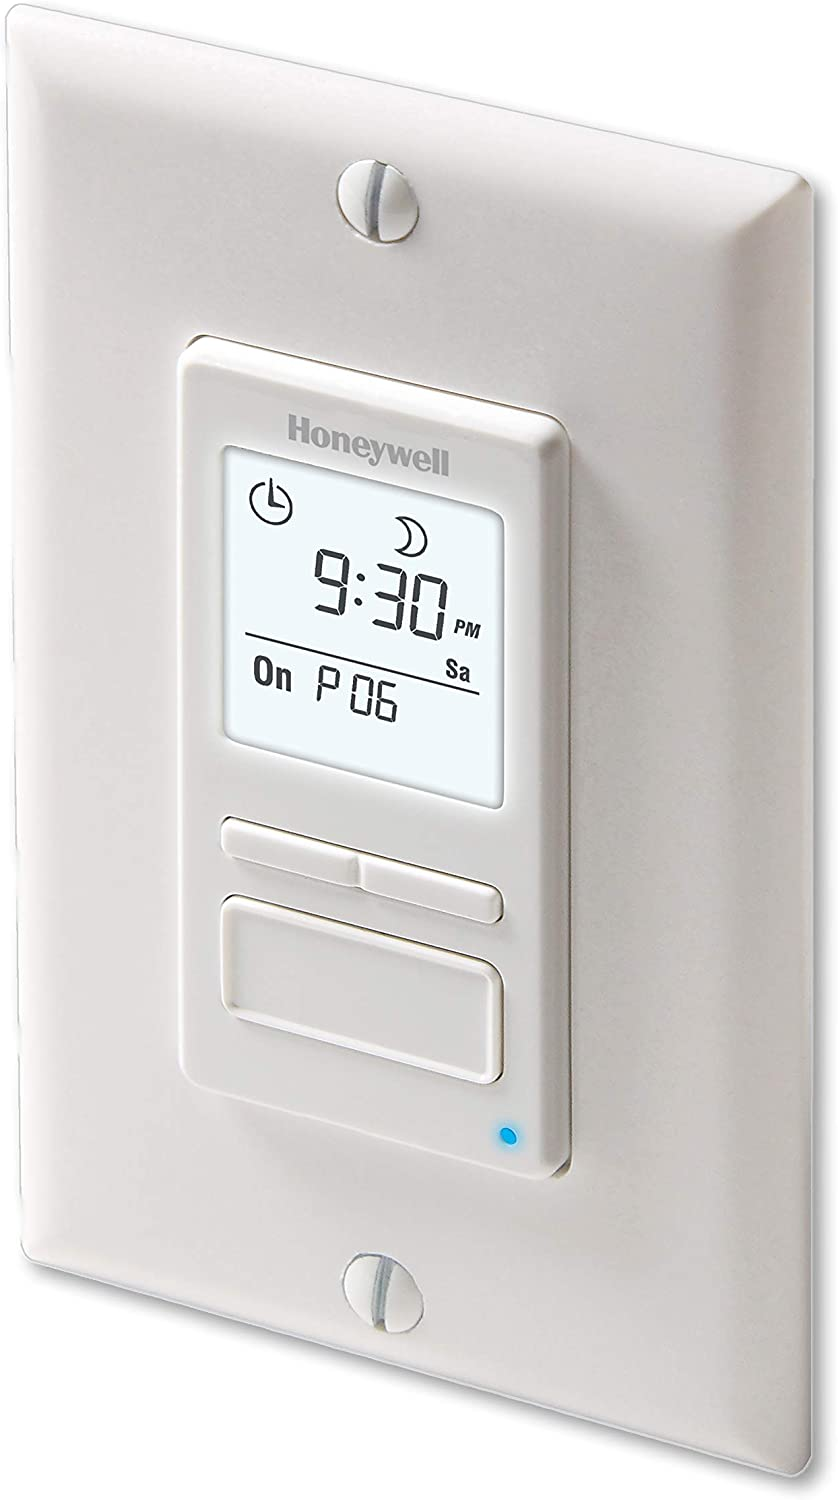 Honeywell Home RPLS740B1008 Econoswitch 7-Day Programmable Light Switch Timer, White - Wall Light Switches -